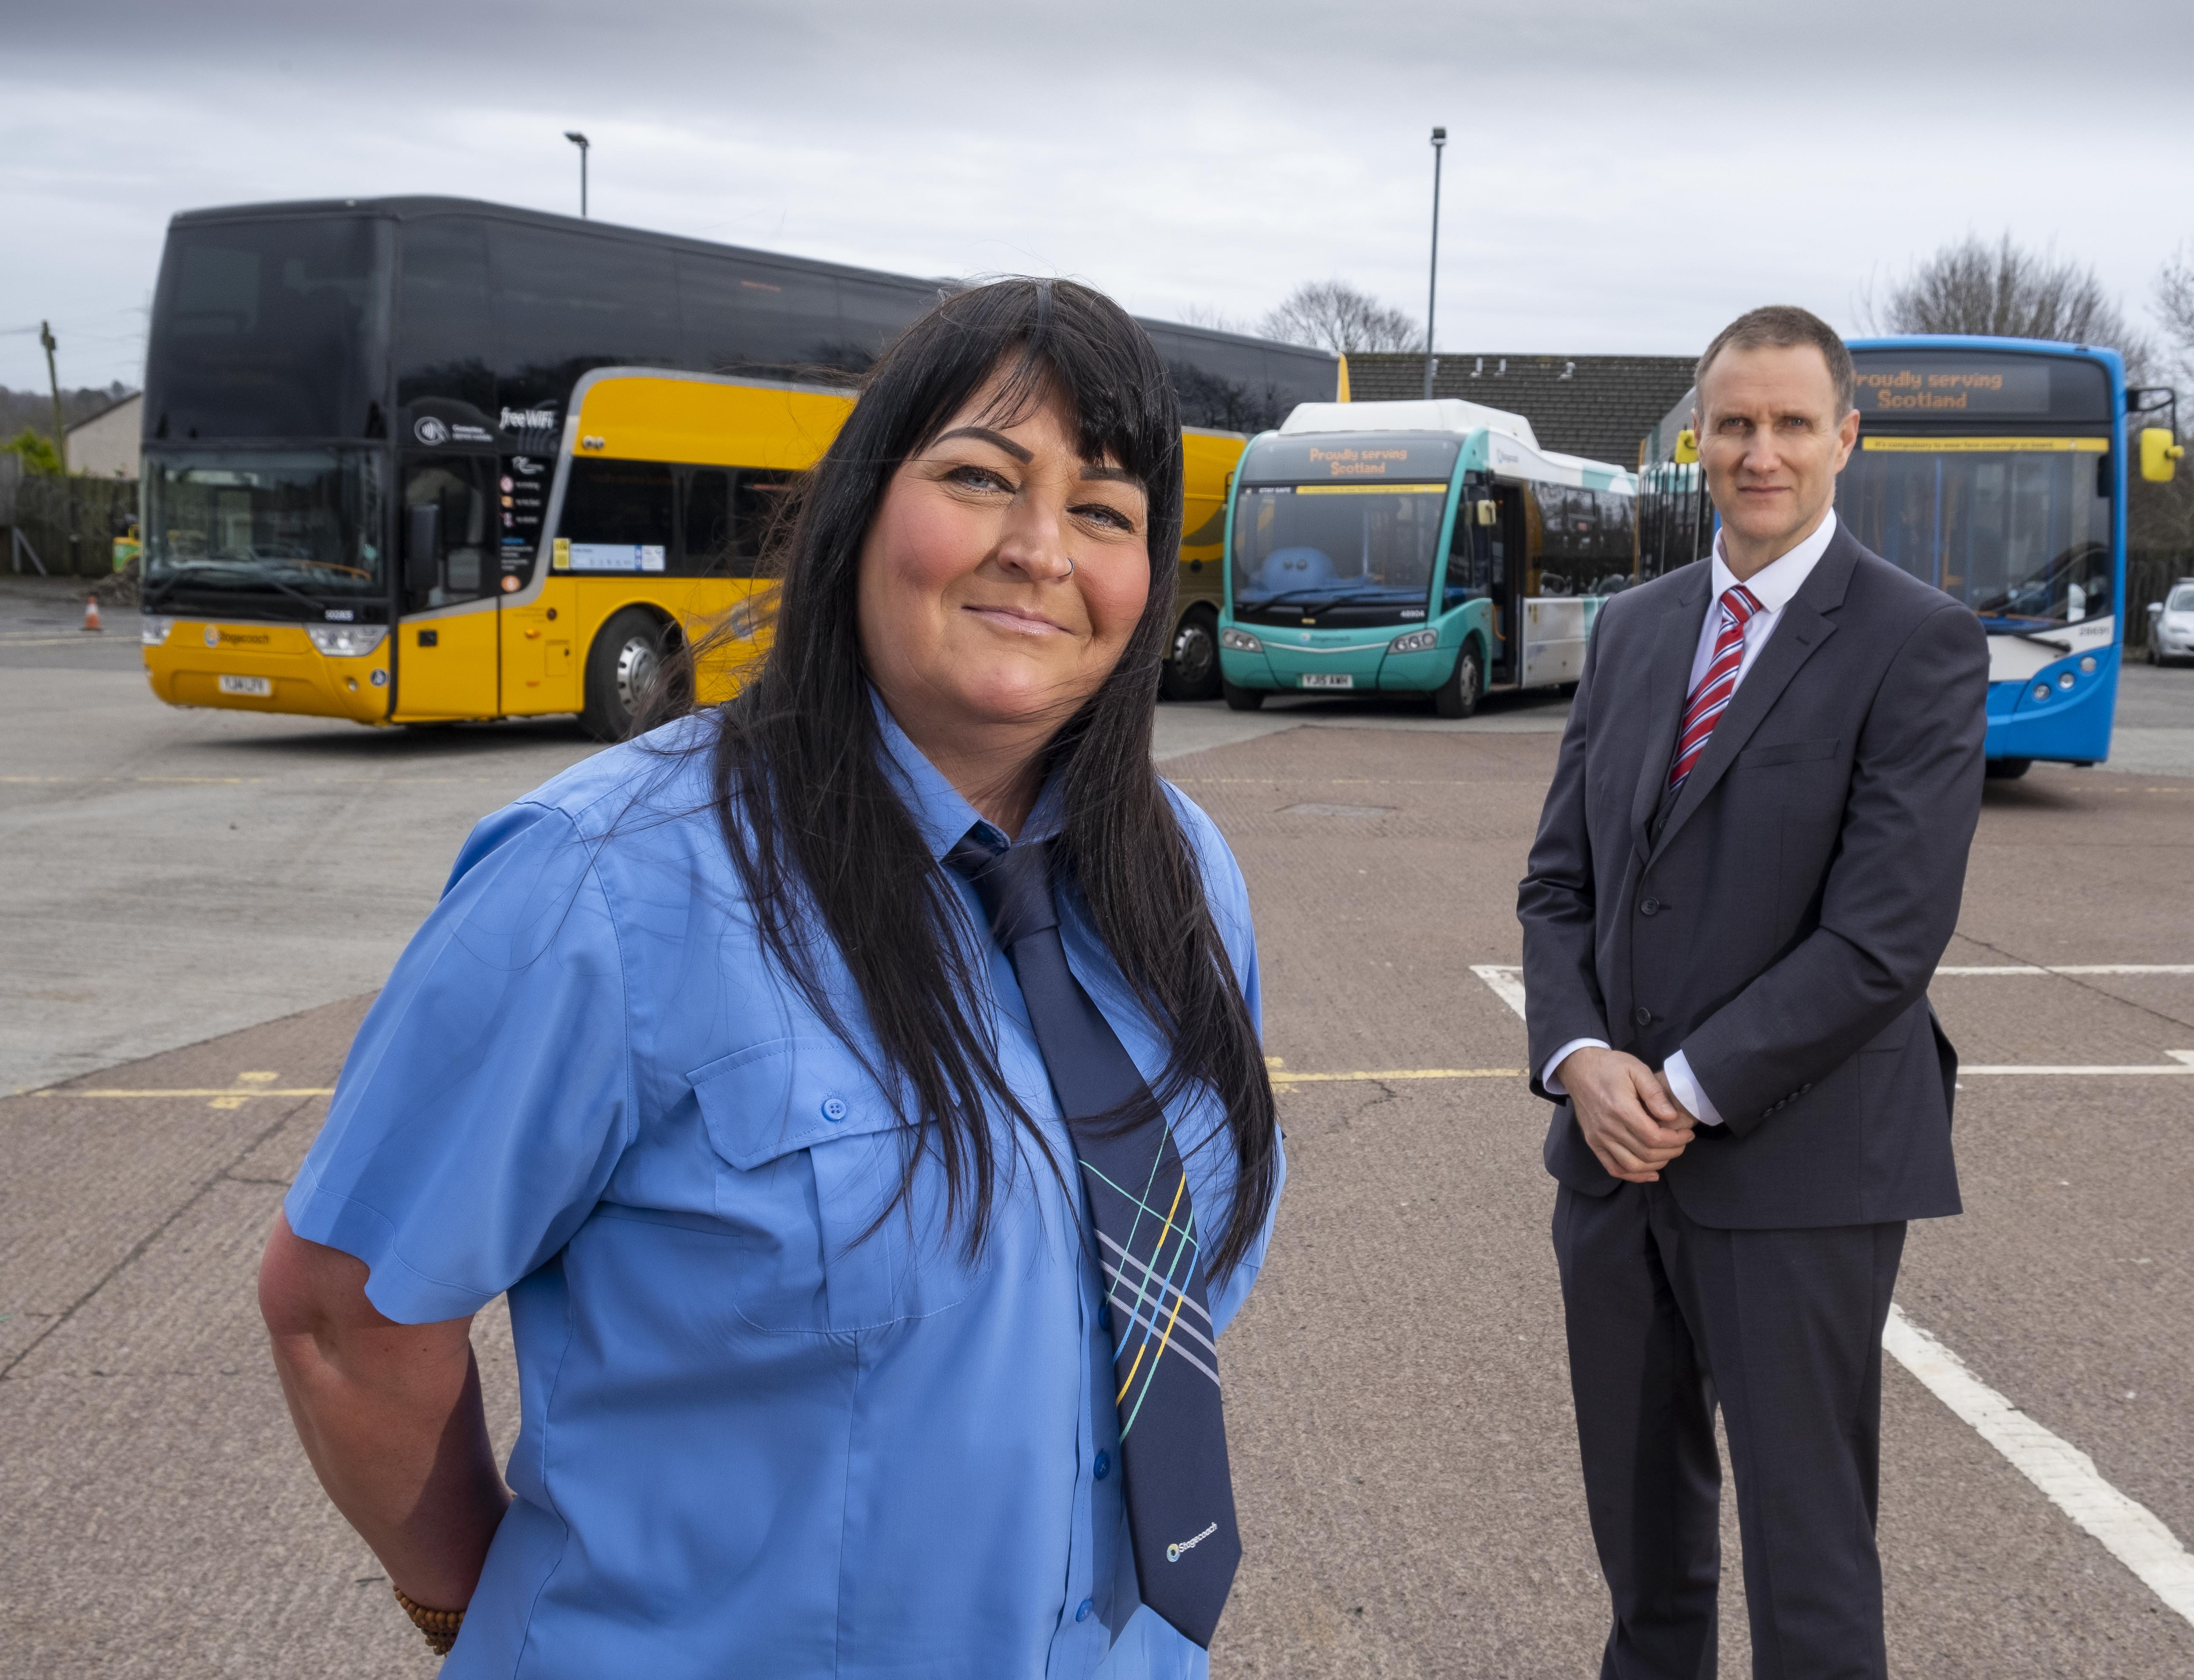 Stagecoach Driver Ayrshire